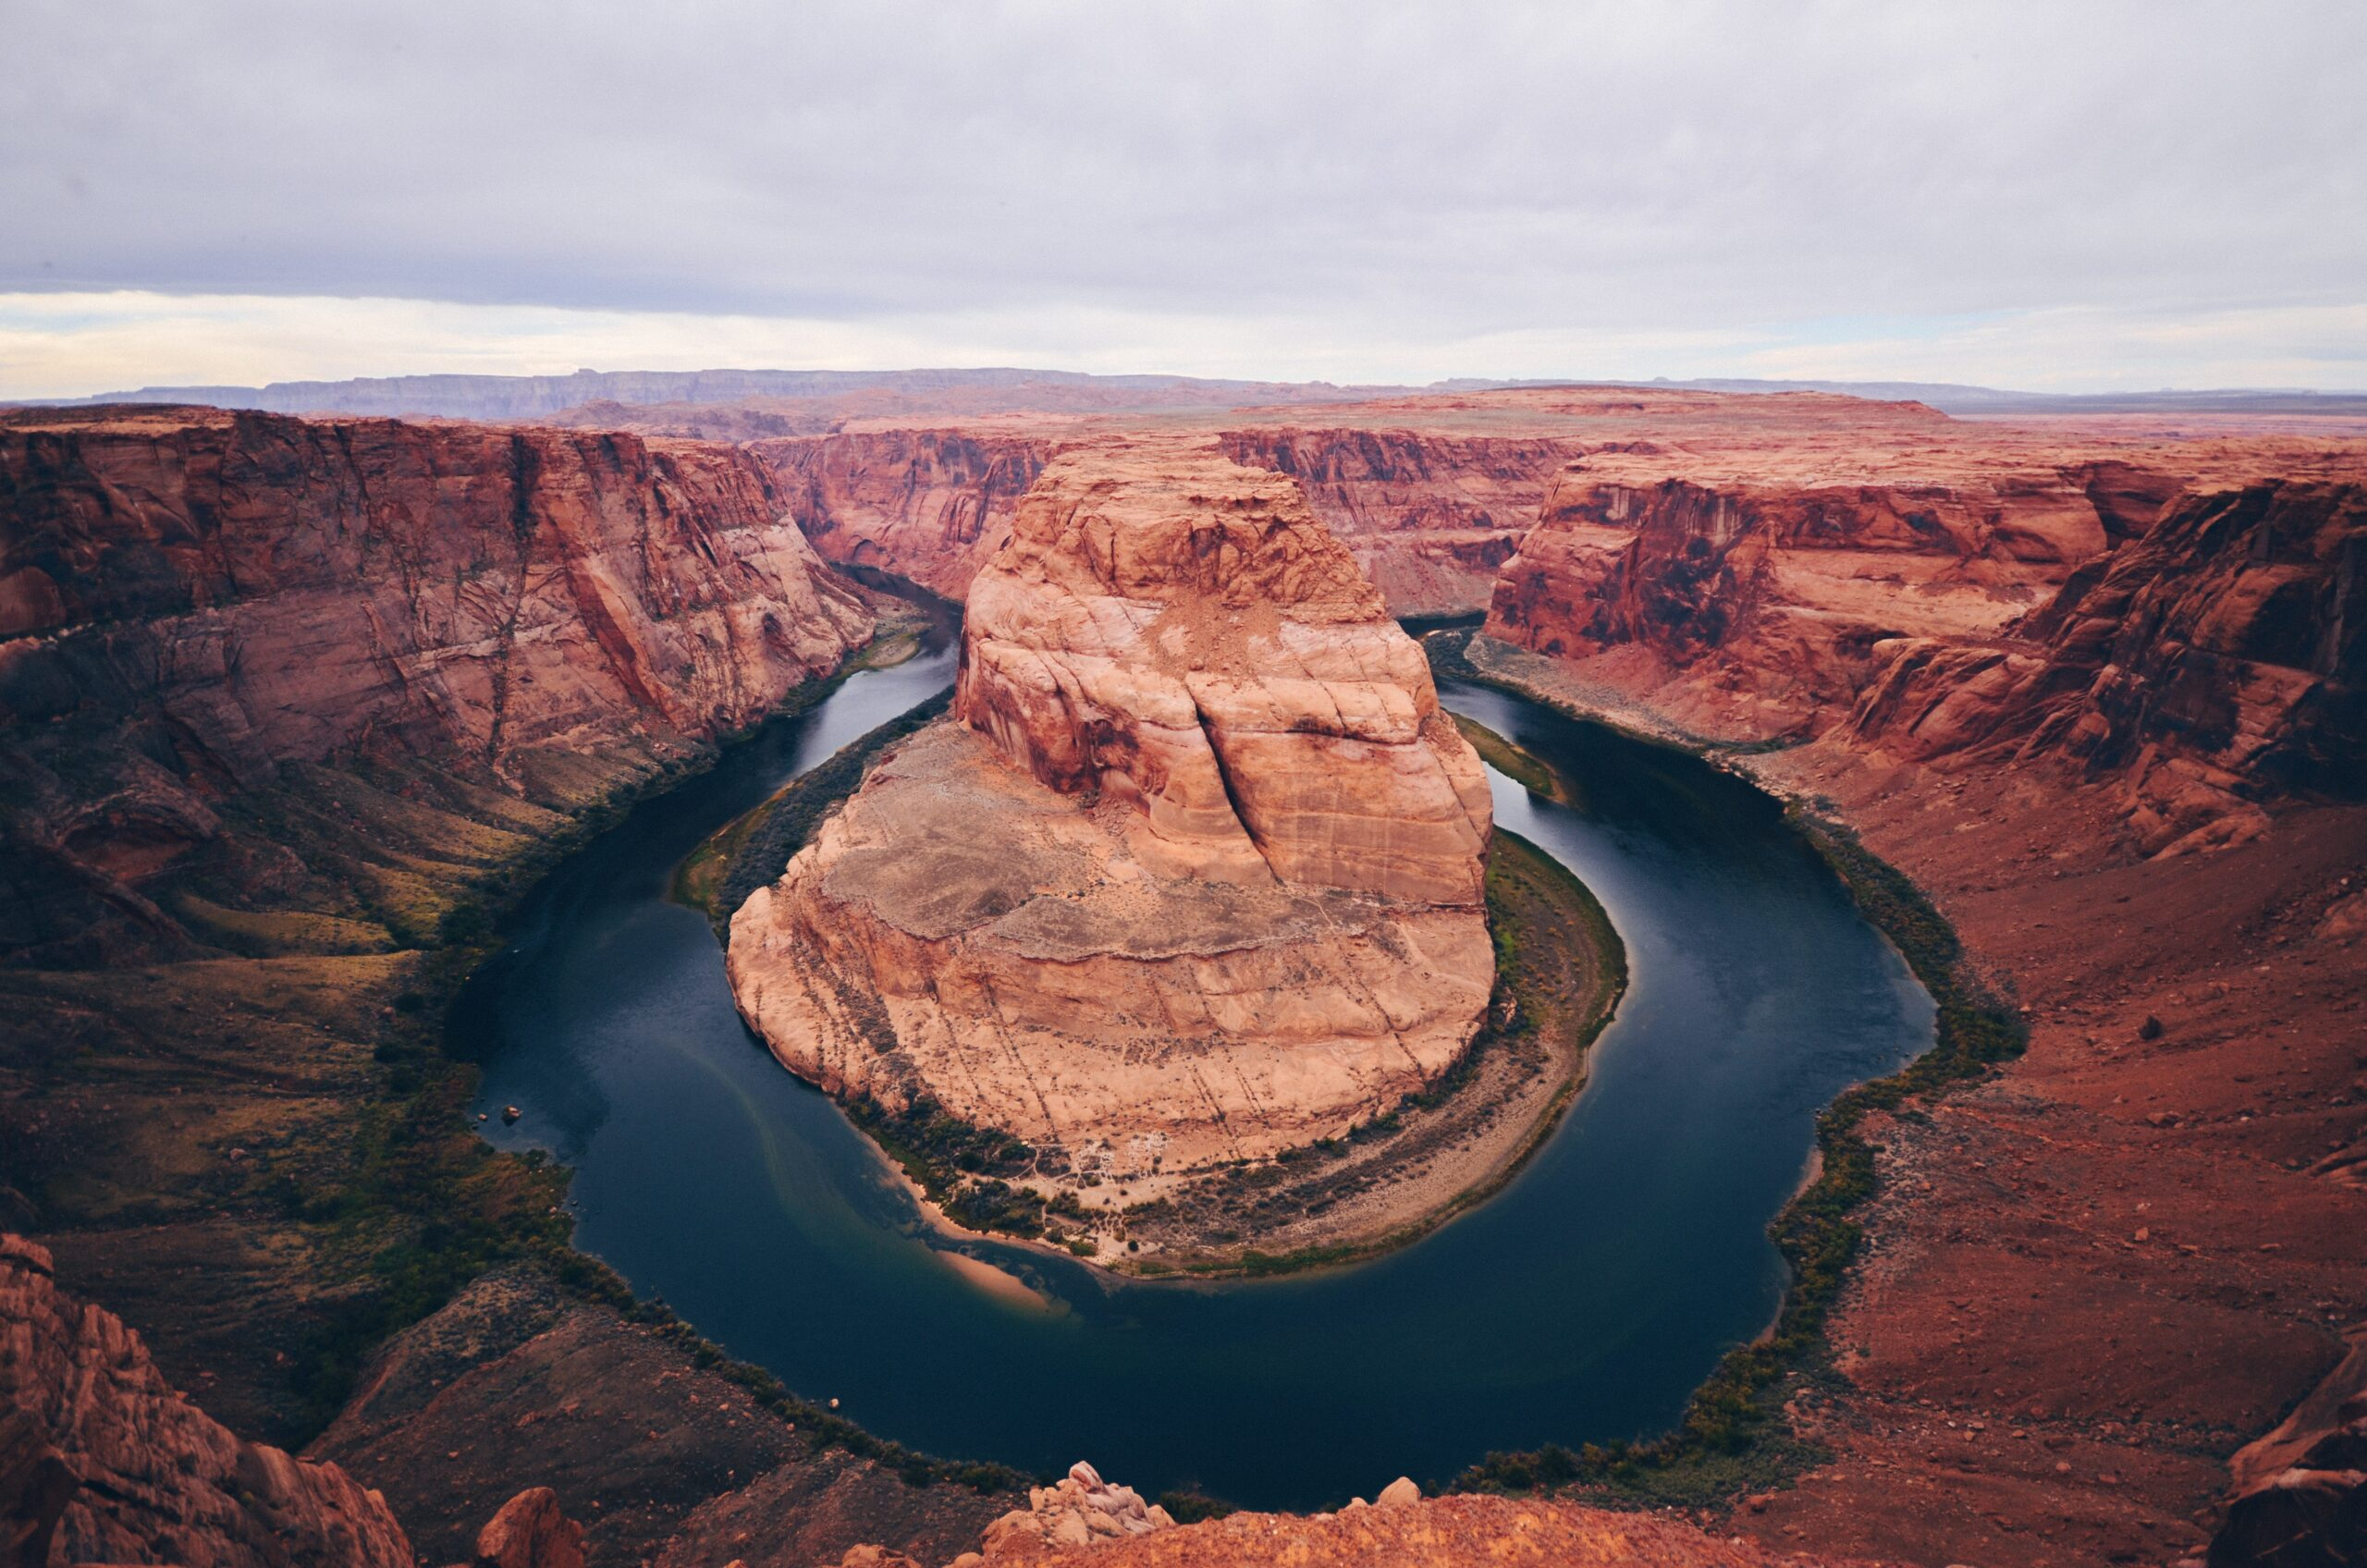 Canyon RIver by des Recits from Unsplash